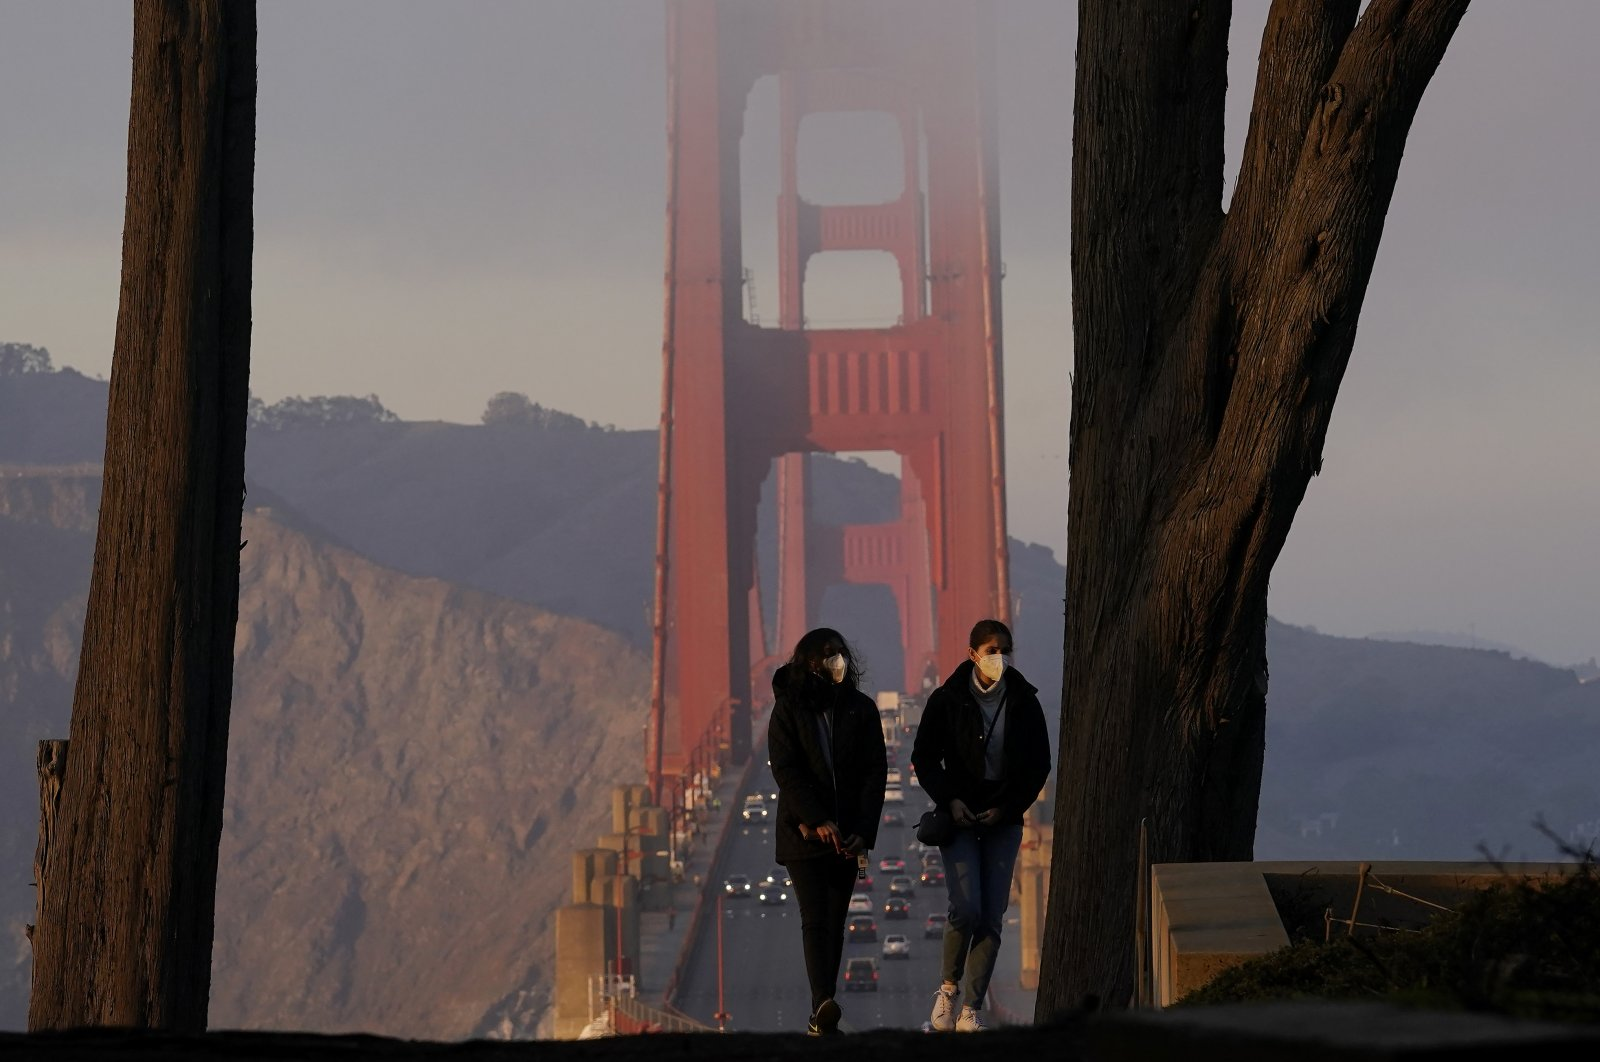 People wear face masks while walking up the stairs at the Golden Gate Overlook in front of traffic driving on the Golden Gate Bridge in San Francisco, California, Dec. 21, 2020. (AP Photo)